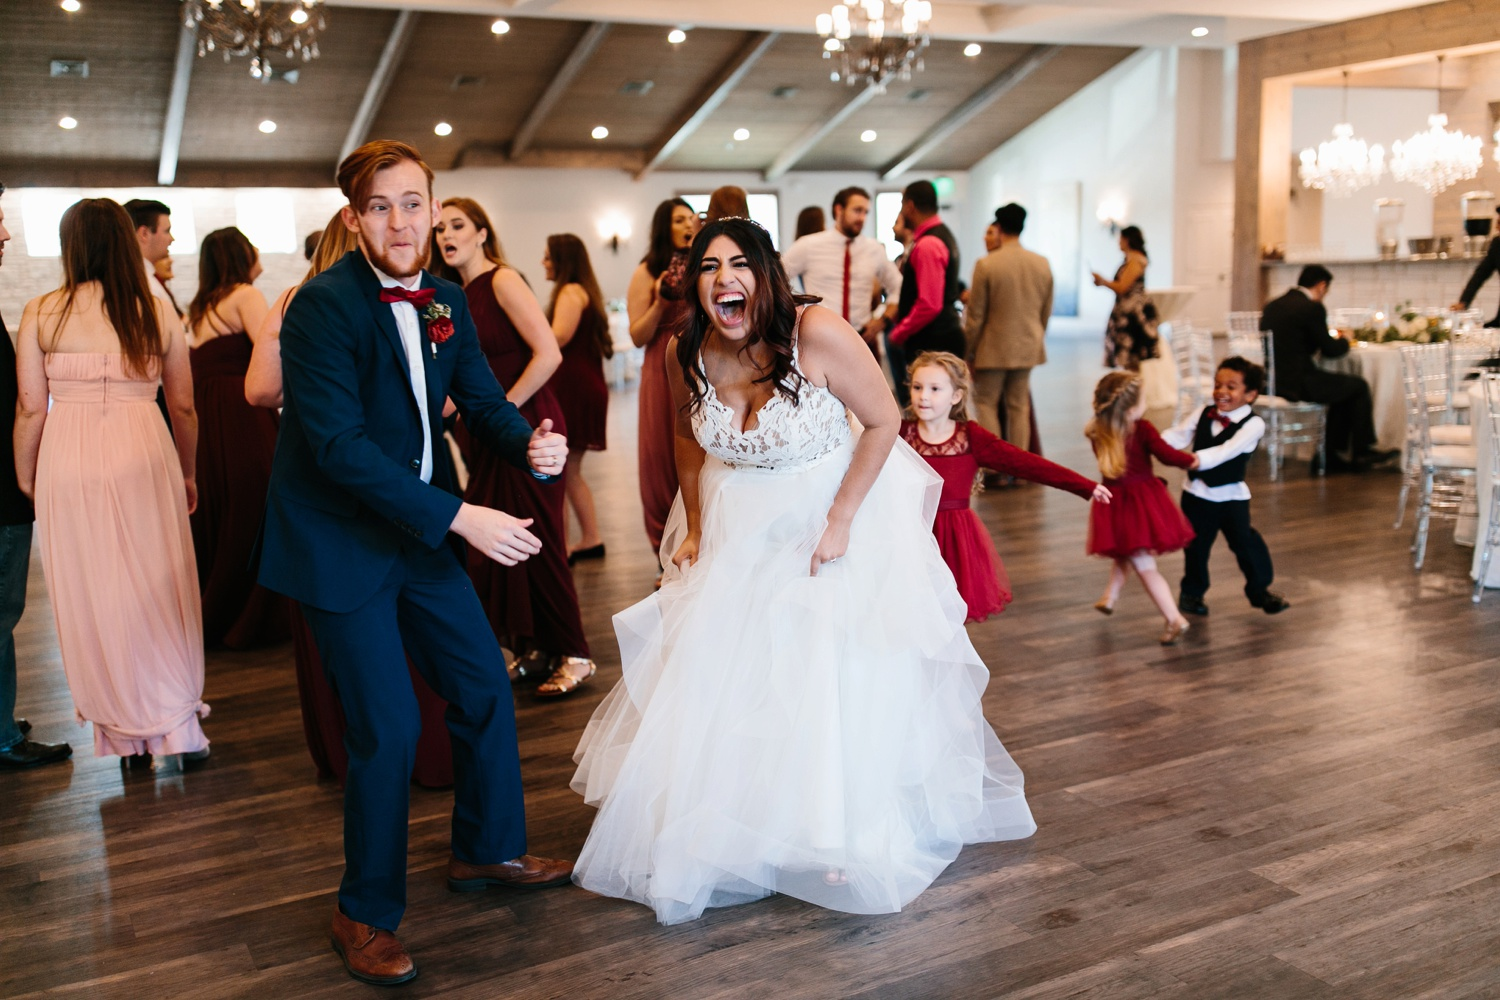 Grant + Lysette | a vibrant, deep burgundy and navy, and mixed metals wedding at Hidden Pines Chapel by North Texas Wedding Photographer Rachel Meagan Photography 170